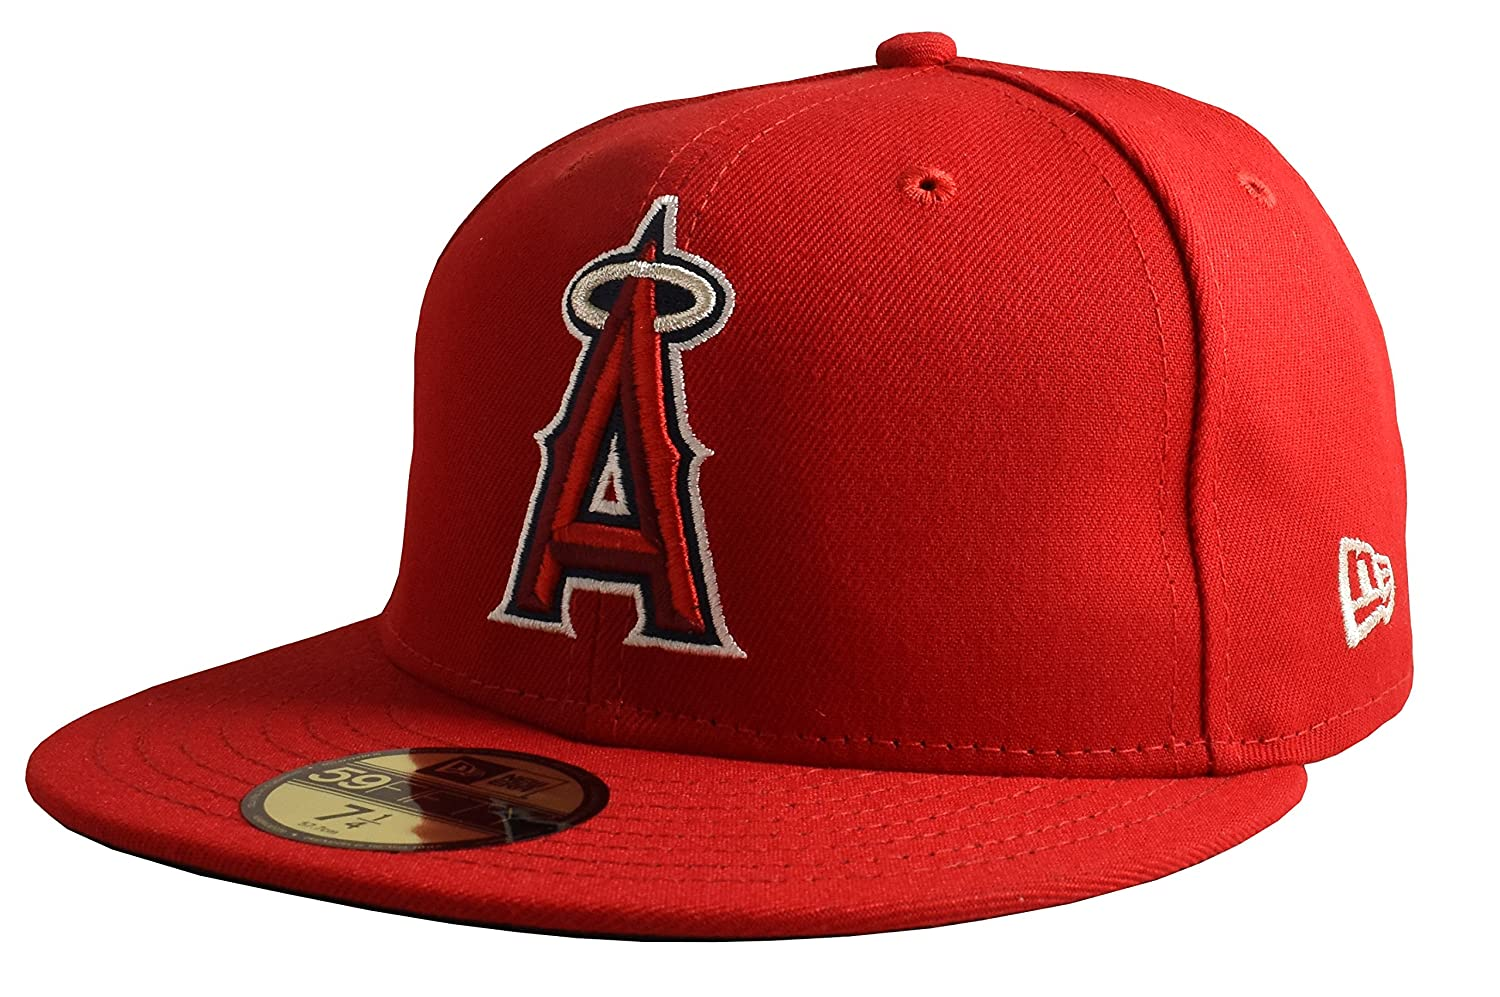 brand new 4a83f 6fce1 Amazon.com   New Era 59FIFTY Los Angeles Angels of Anaheim 2018 Authentic  Collection On Field Game Cap   Shoes